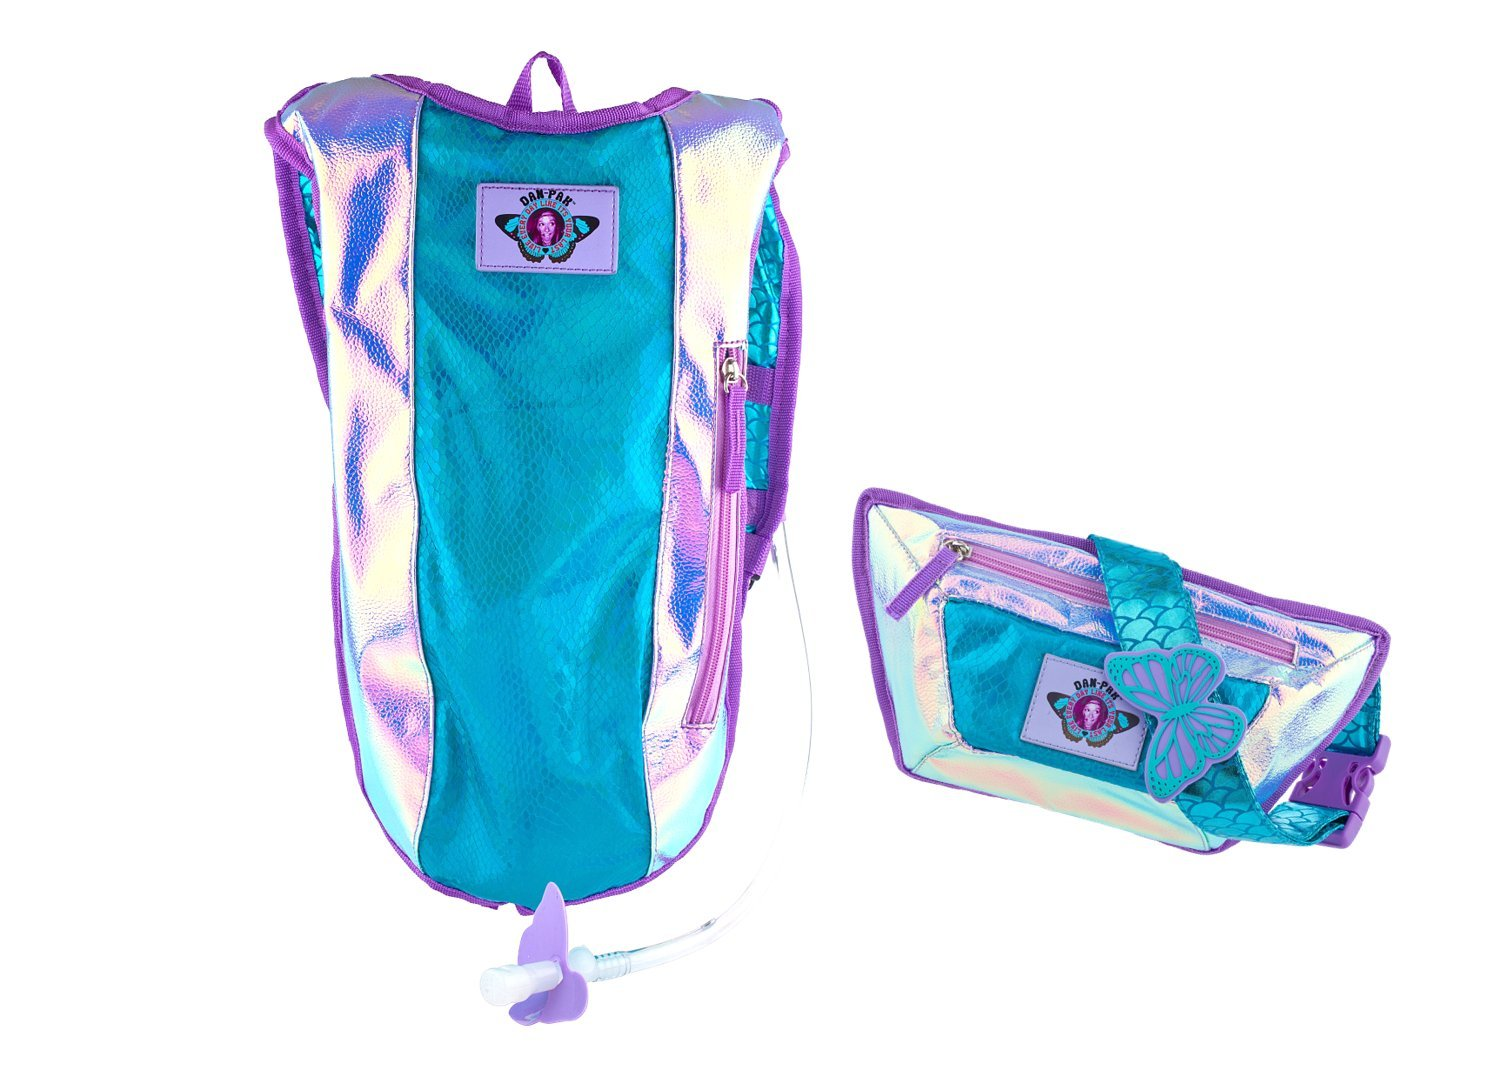 Dan-Pak Plurmaid Hydration Pack Fanny Pack!- Matching Hydration Backpack Waist Pack! -Mermaid Scales Rave Backpack Blue Purple Shiny Bag